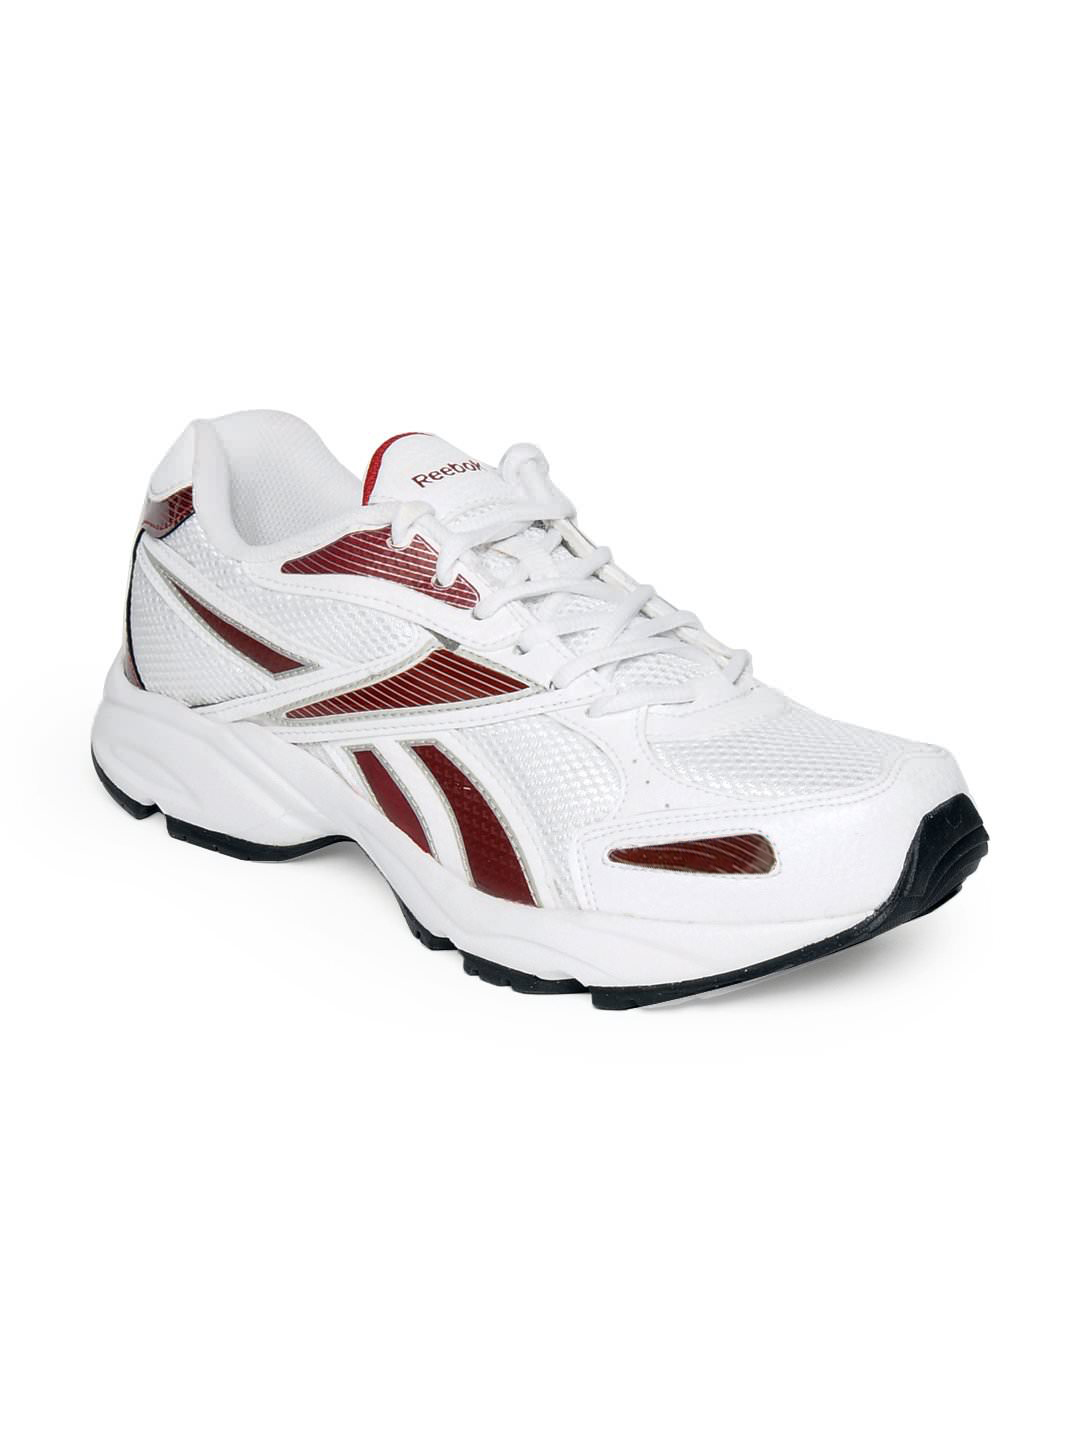 Reebok Men White United Runner Sports Shoes